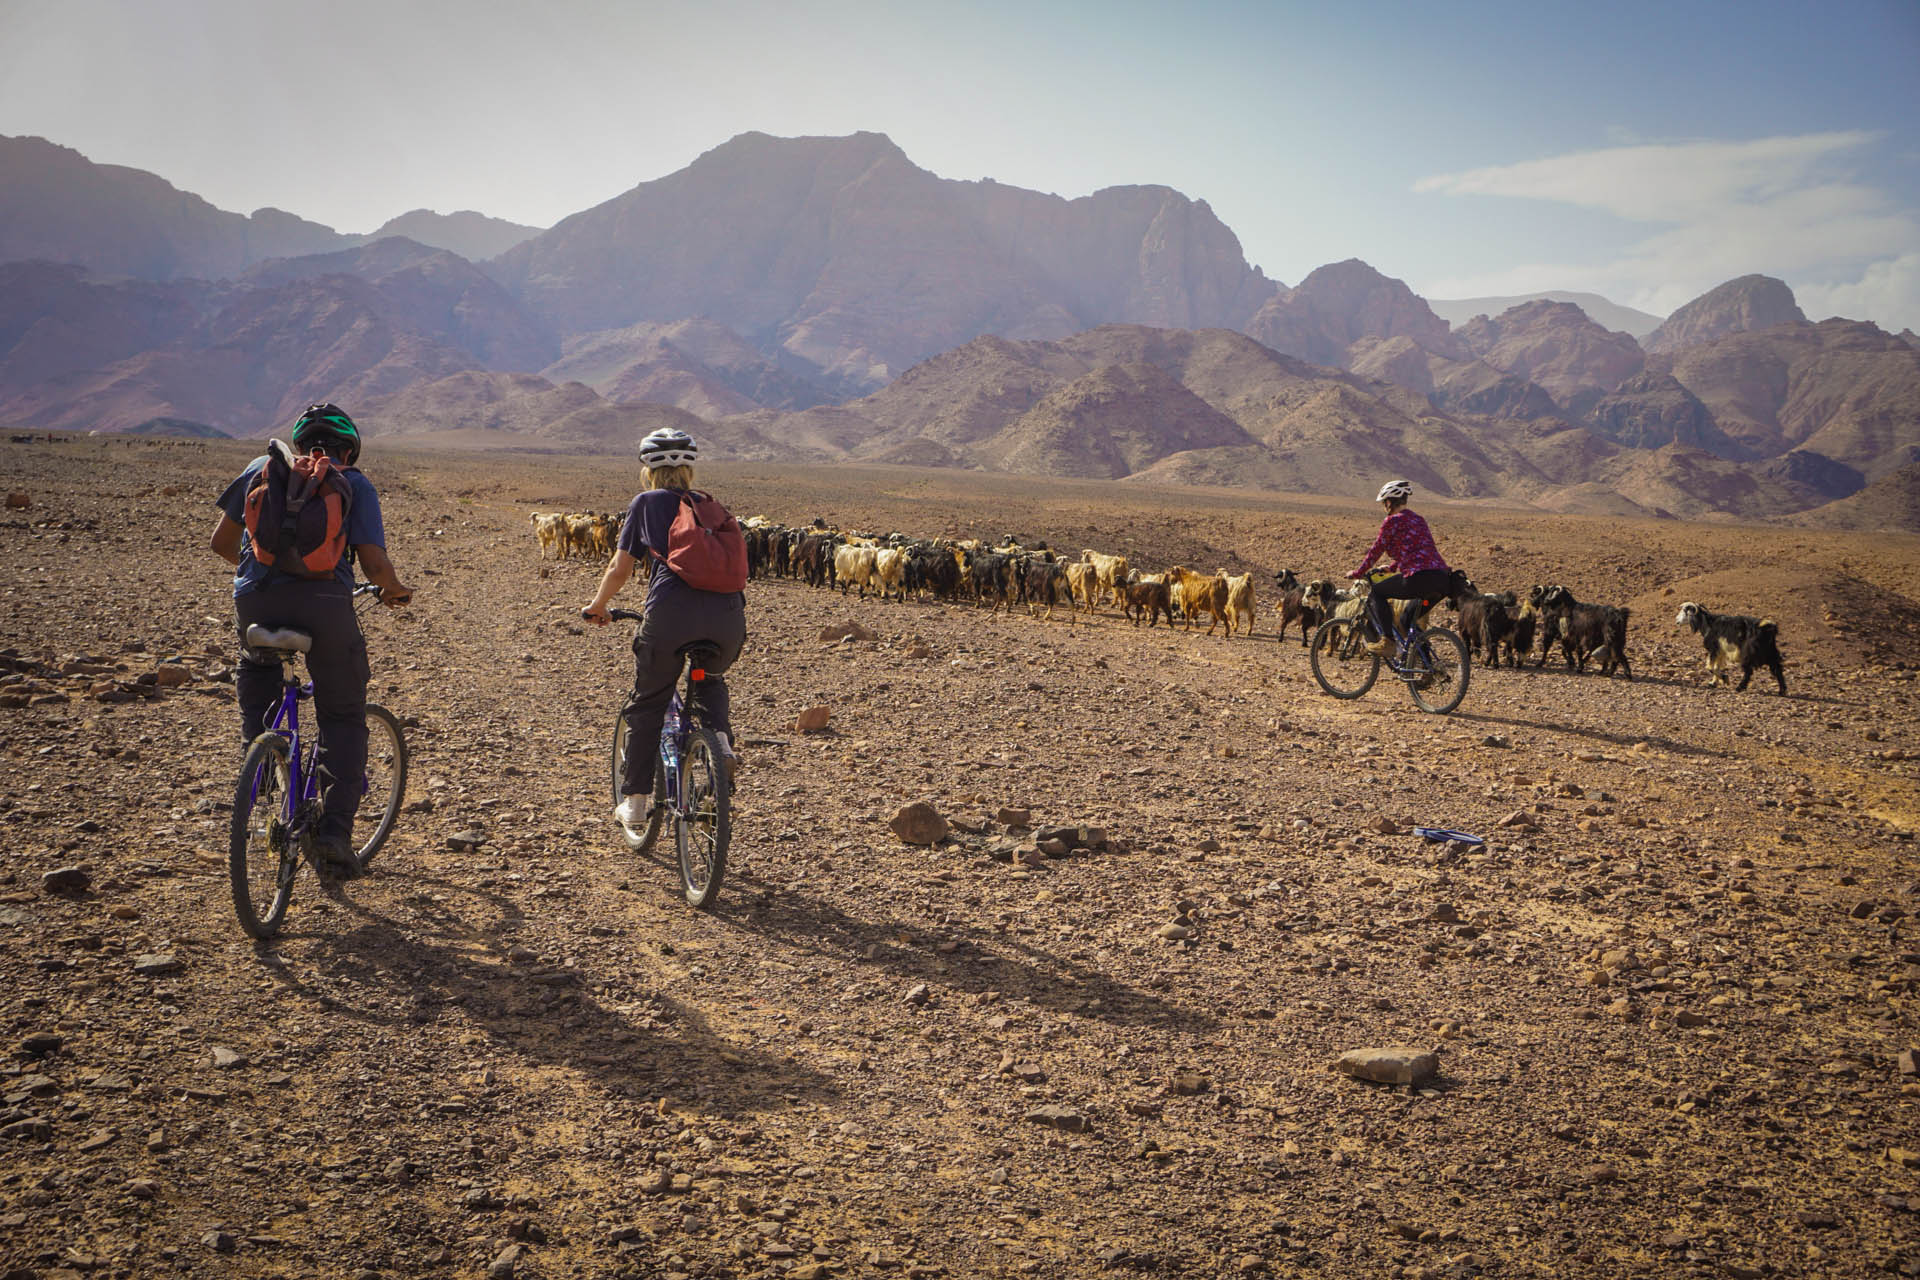 Jordan has something for everyone, including off-road cycling with goats!